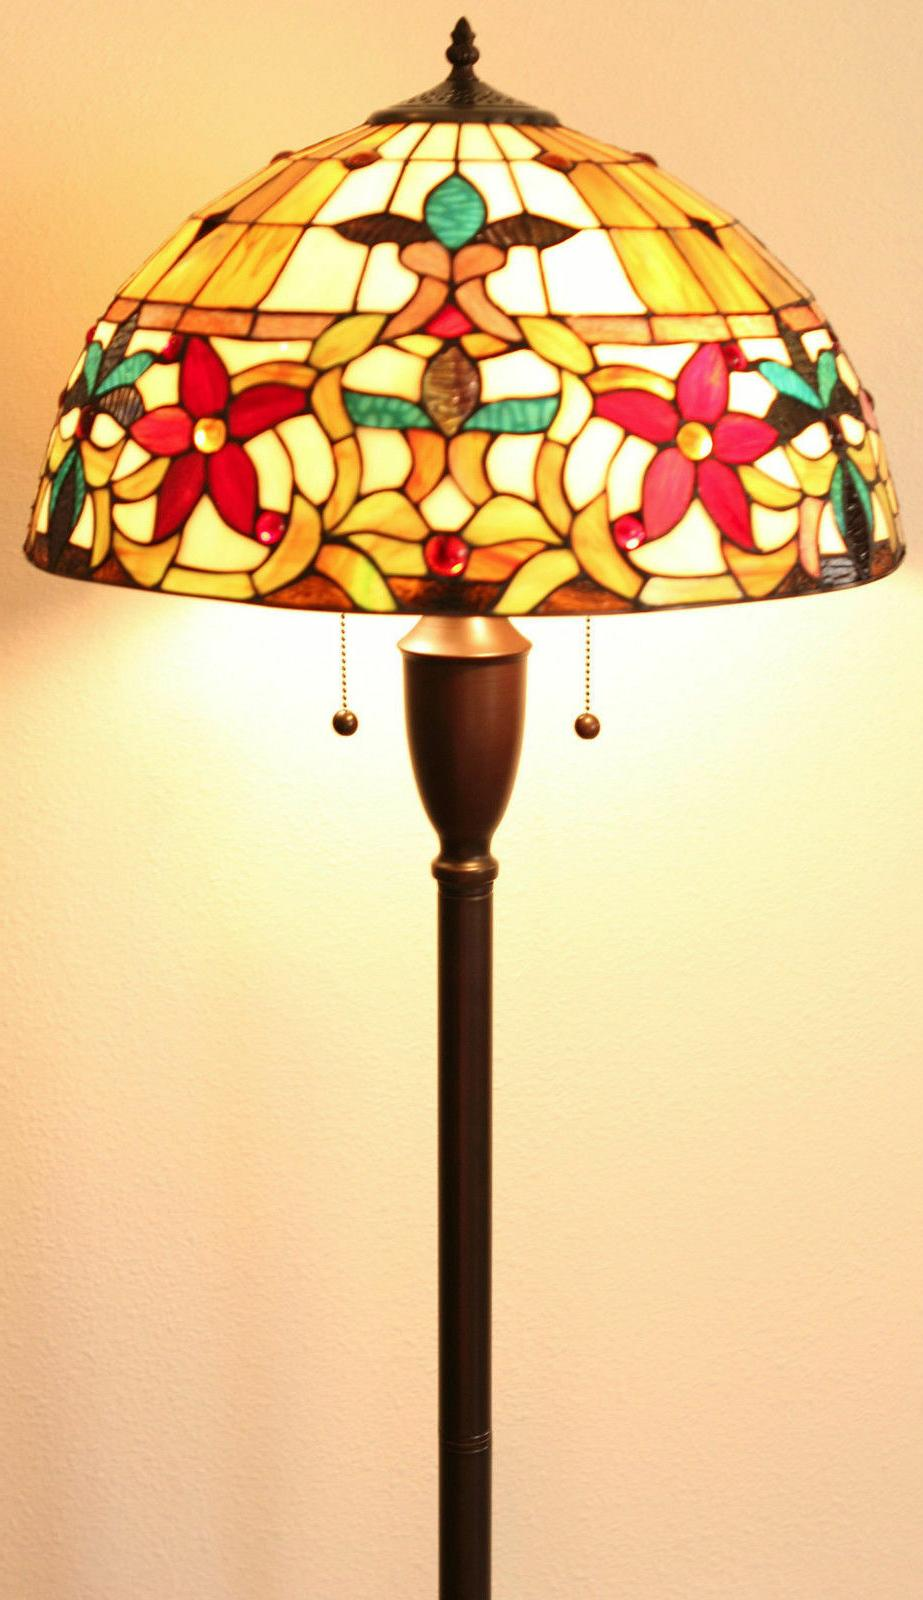 Tiffany Style Stained Floral Lamp Set 2 18""